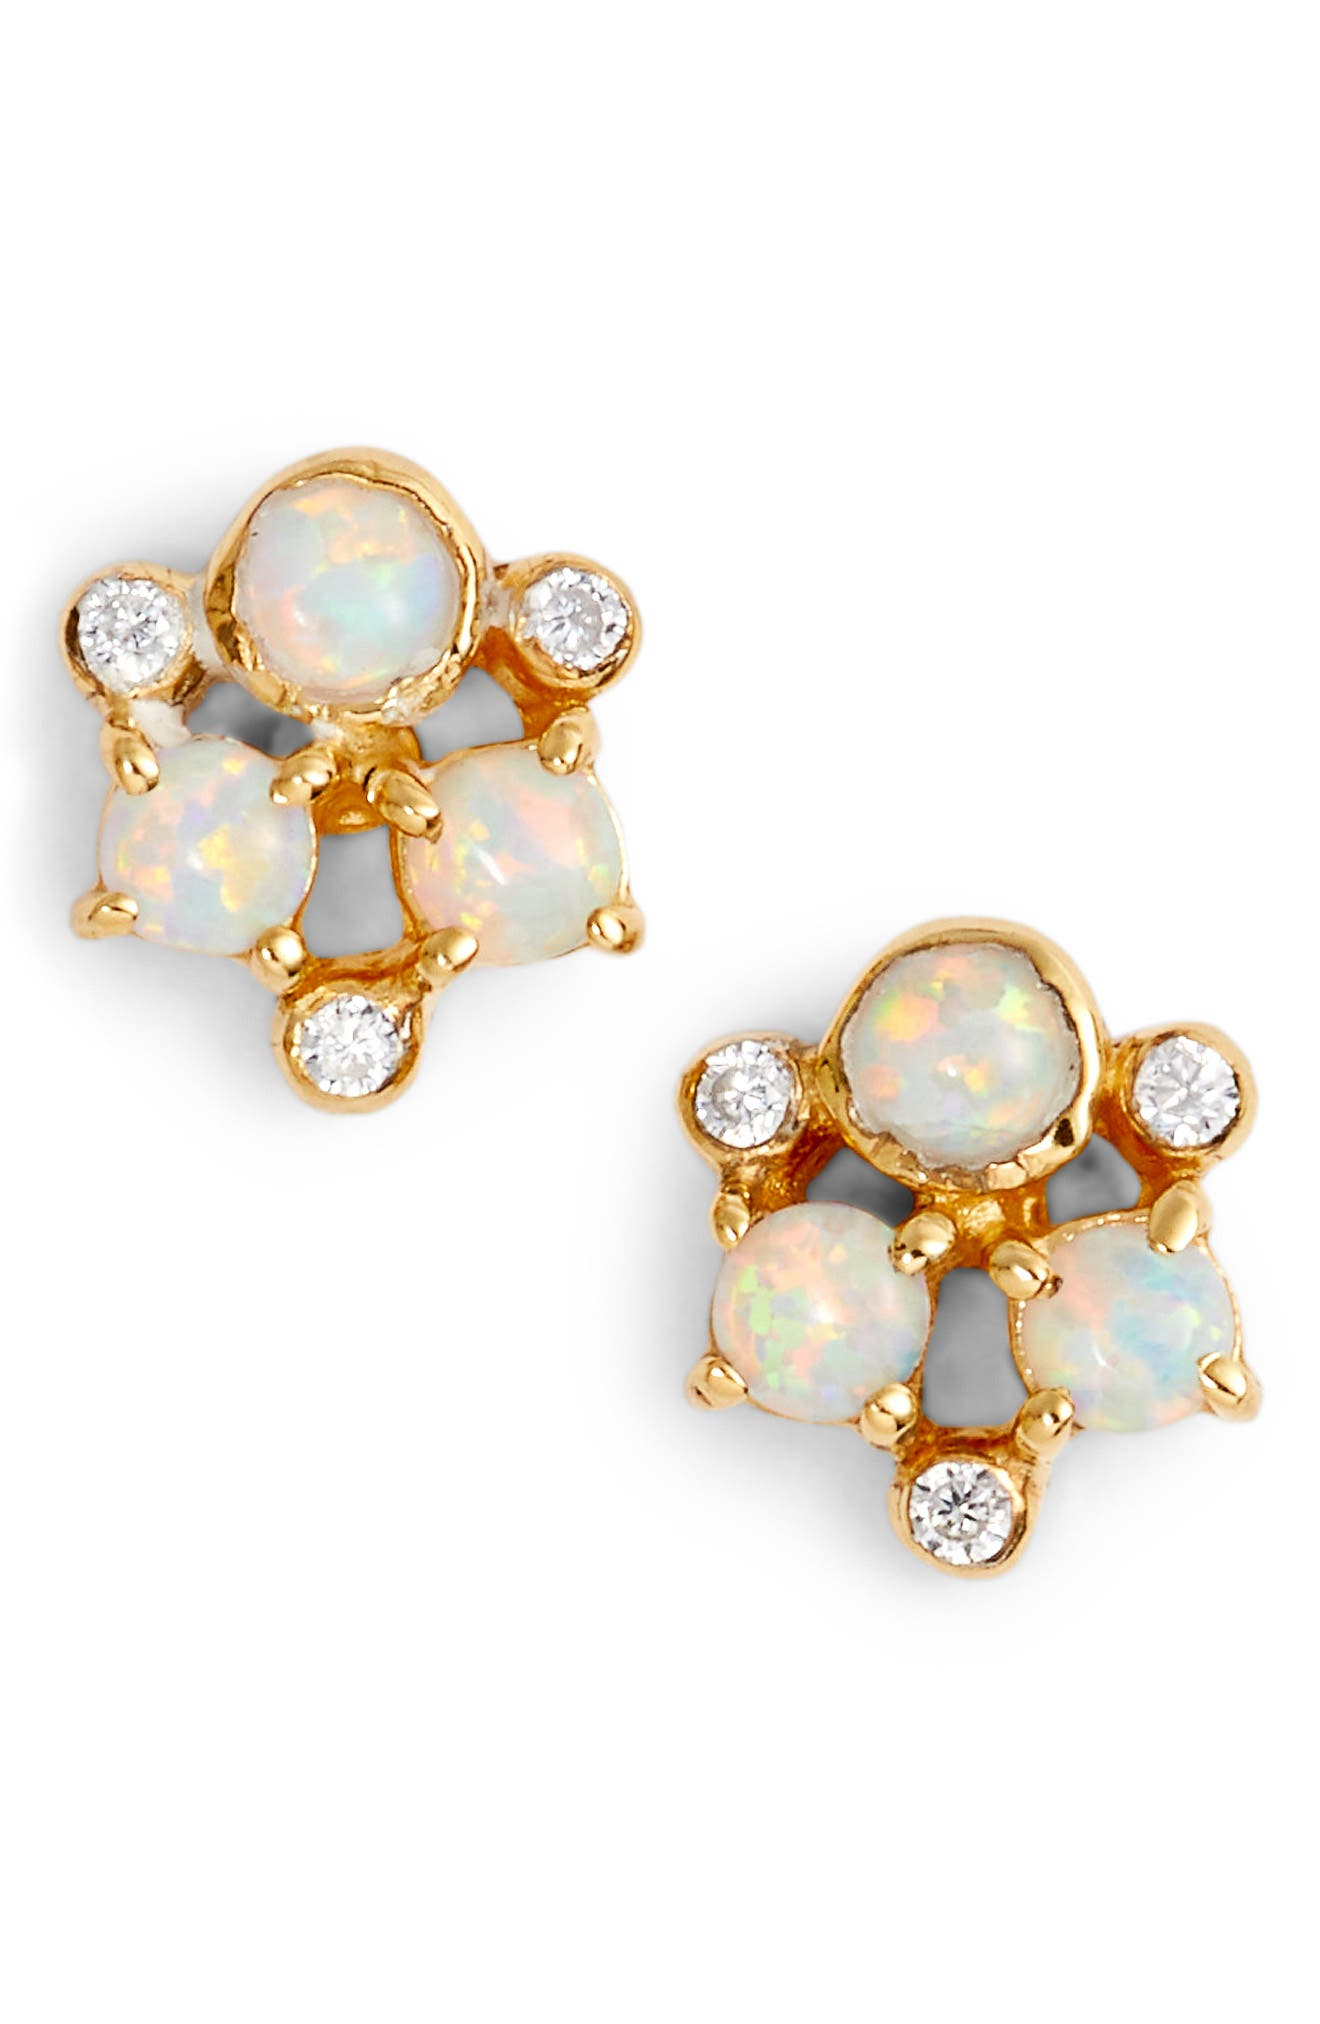 Sydney Cluster Stud Earrings,                             Main thumbnail 1, color,                             Gold